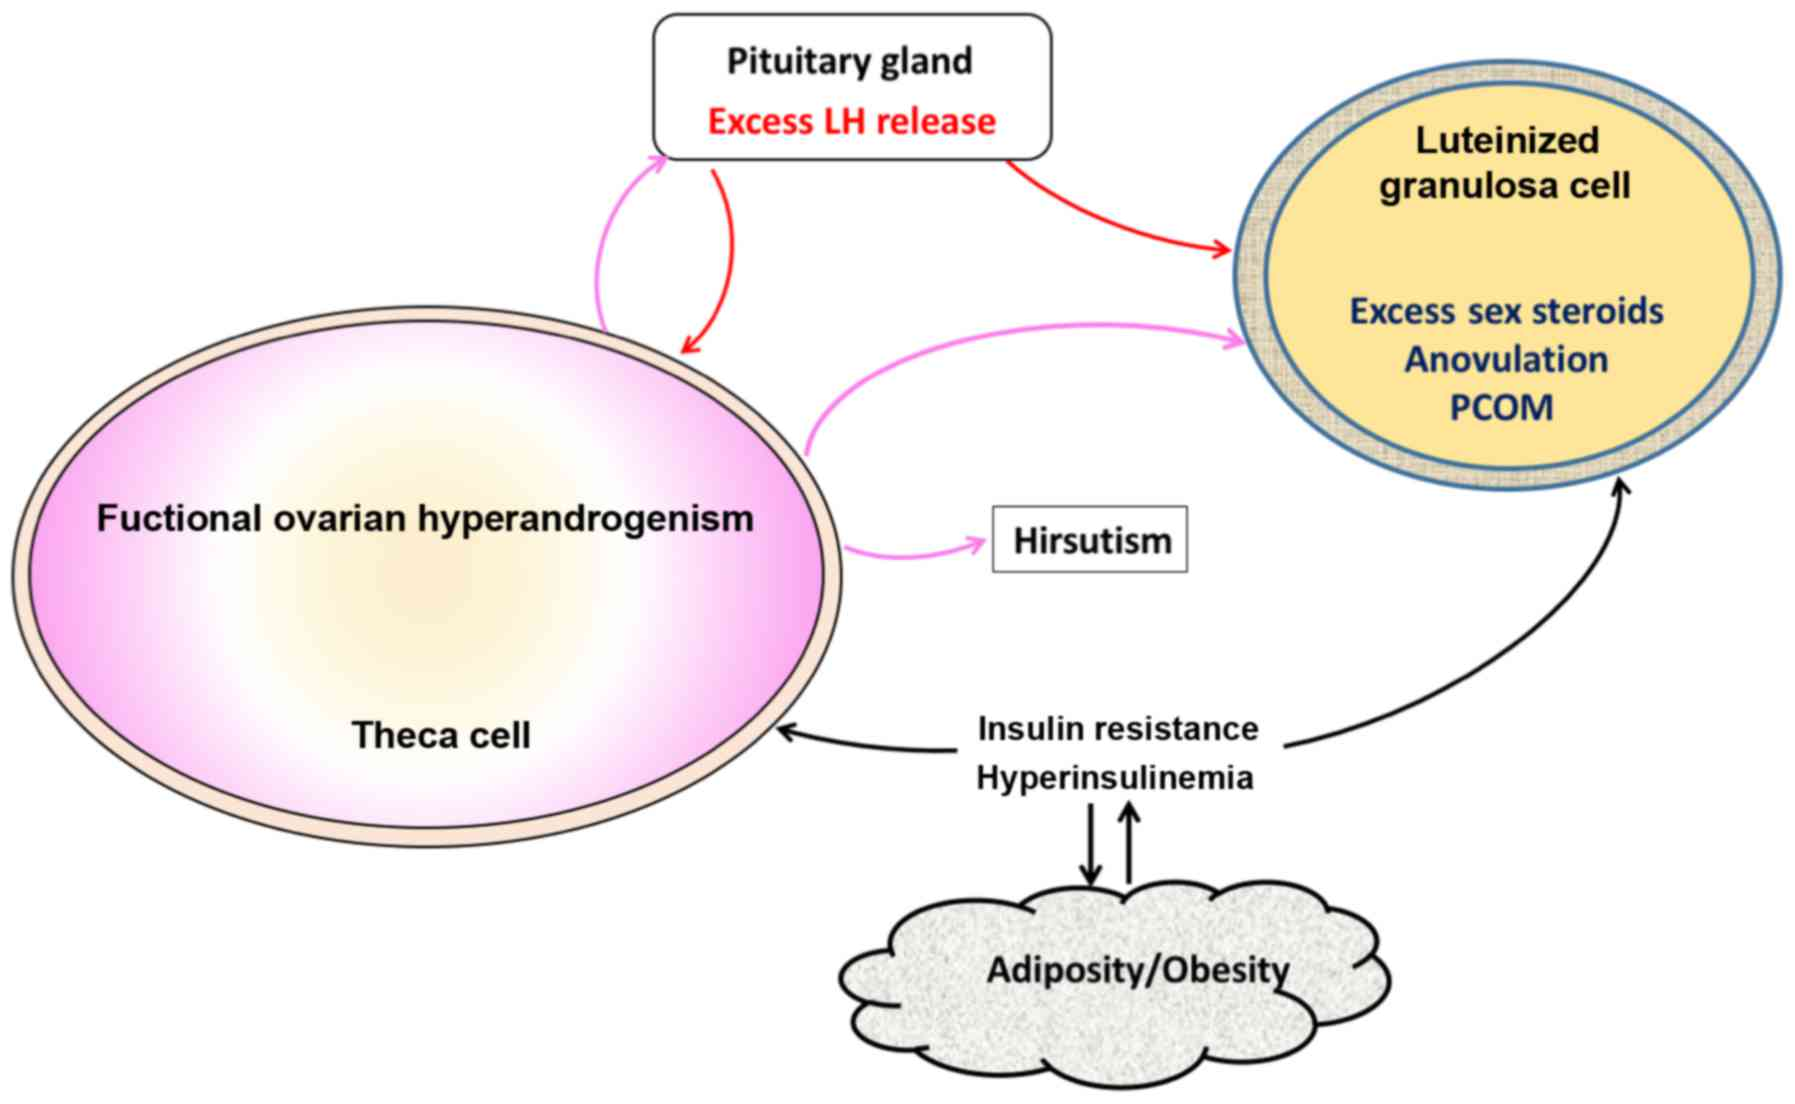 Association of polycystic ovary syndrome with metabolic